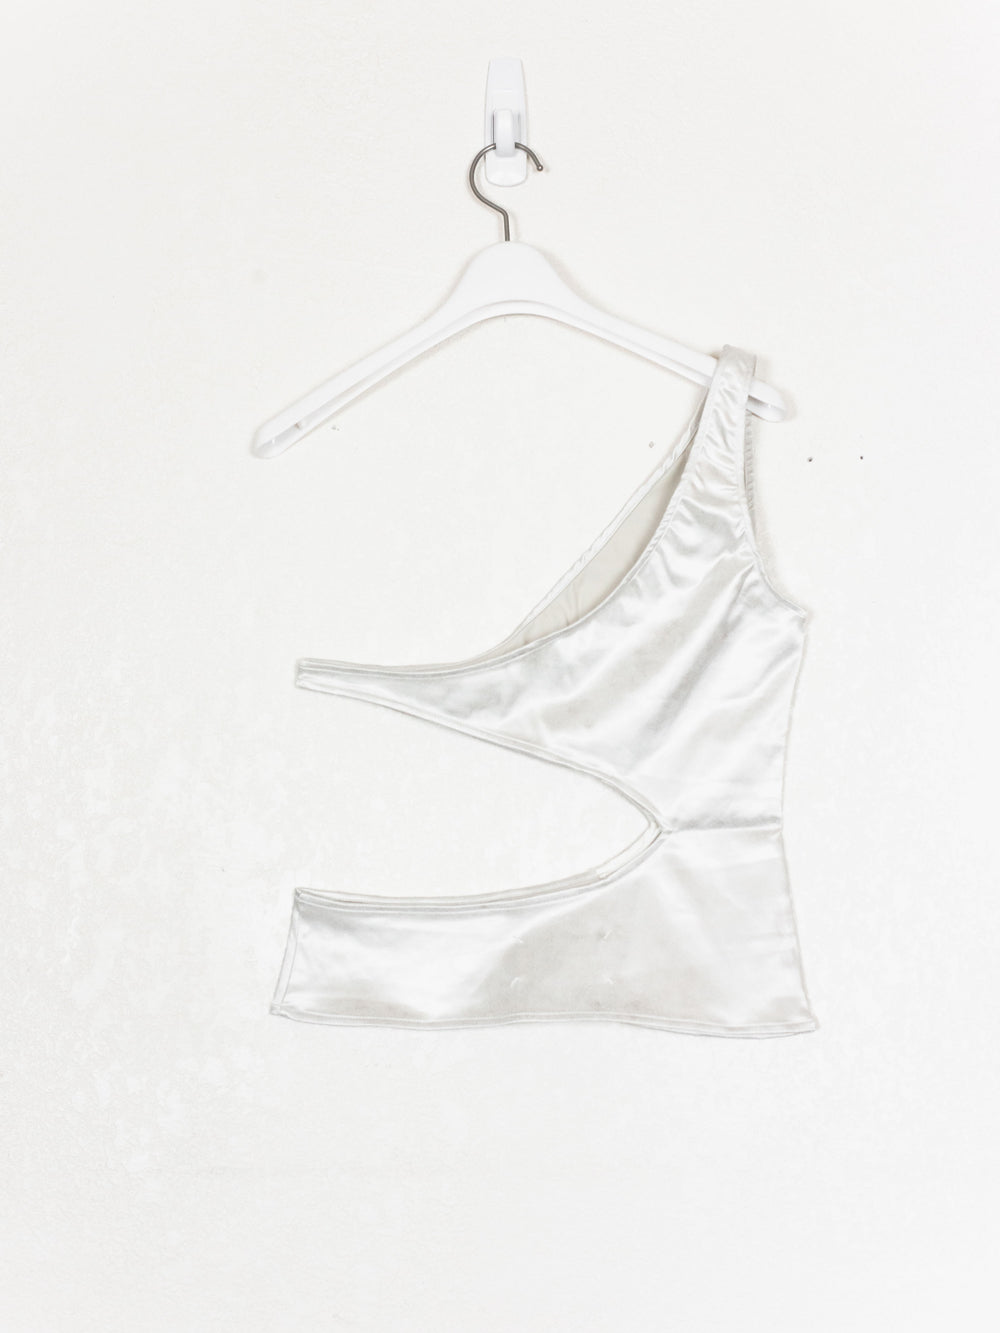 Maison Martin Margiela SS09 Shiny Cutout Harness Top